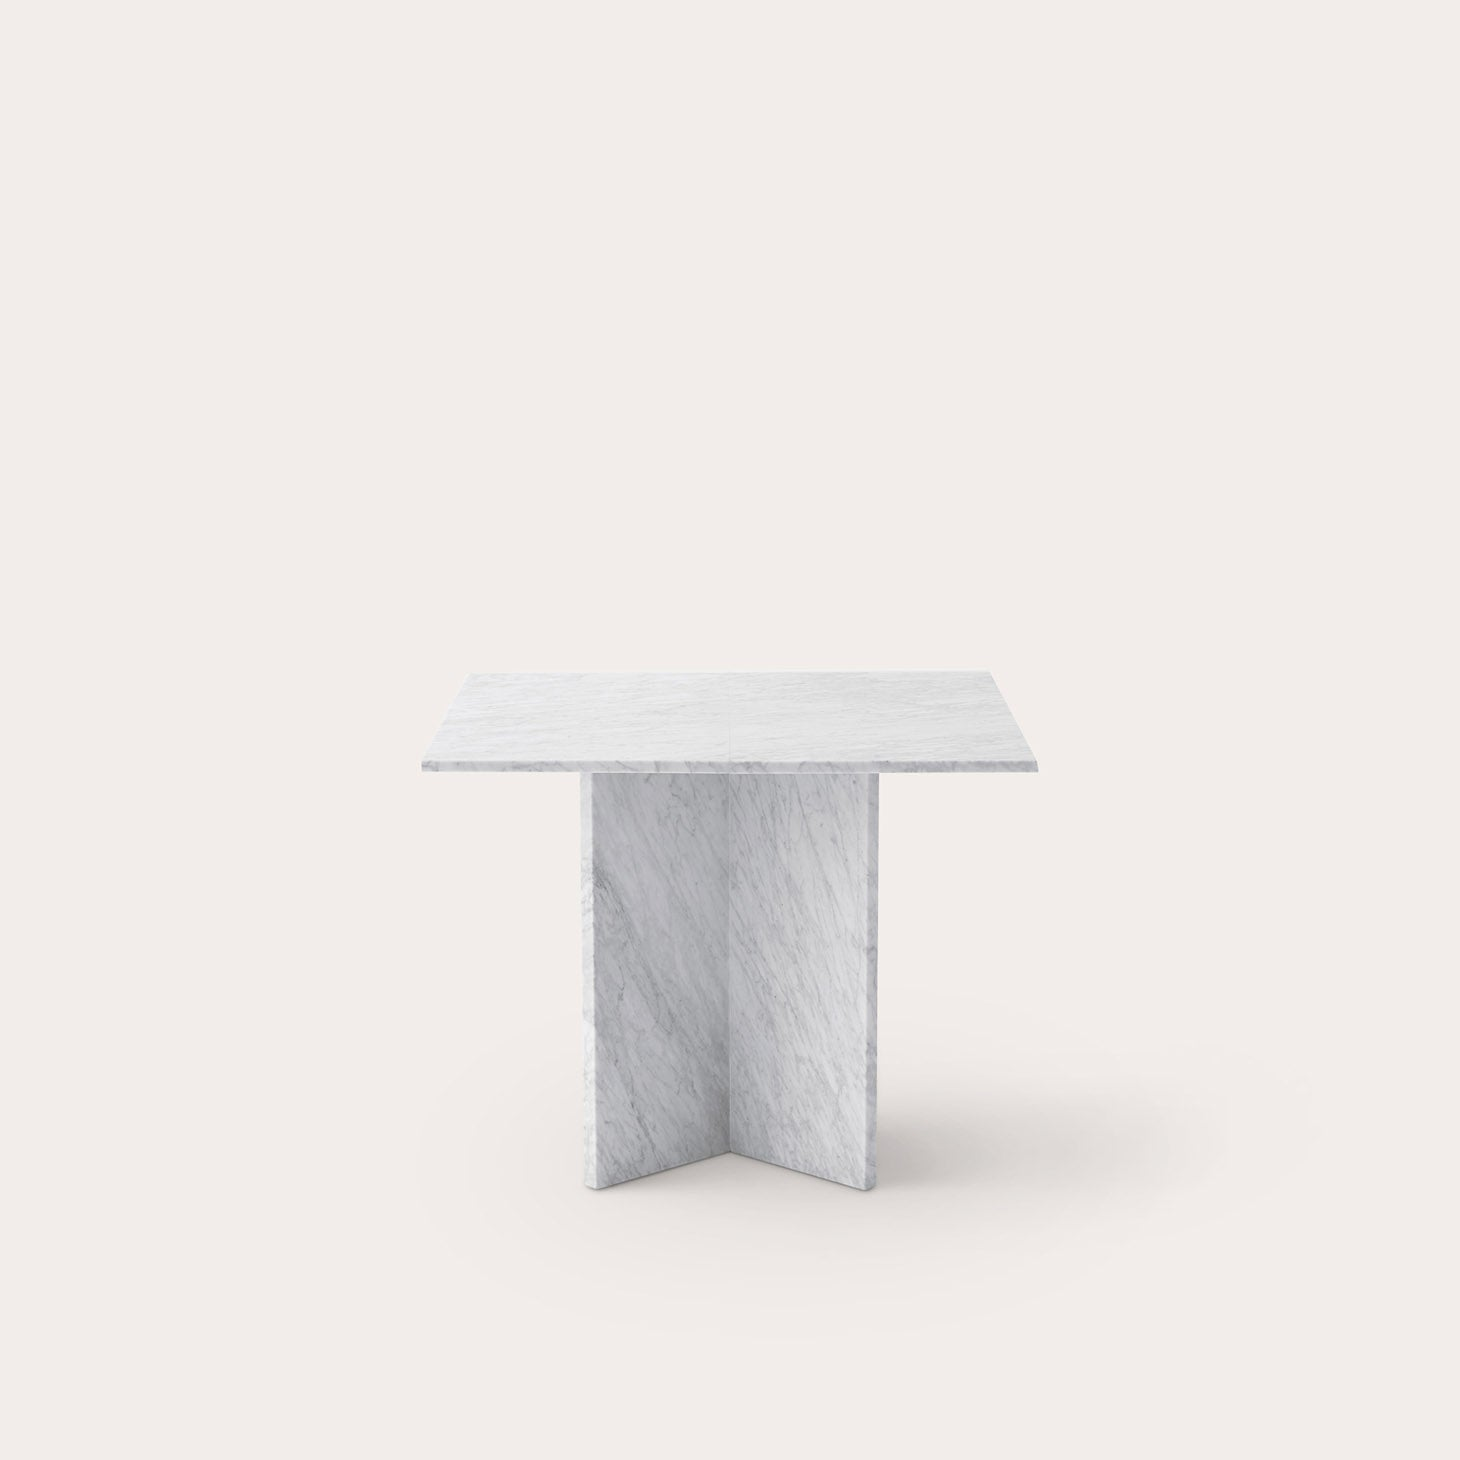 Split B Tables Nendo Designer Furniture Sku: 625-230-10059